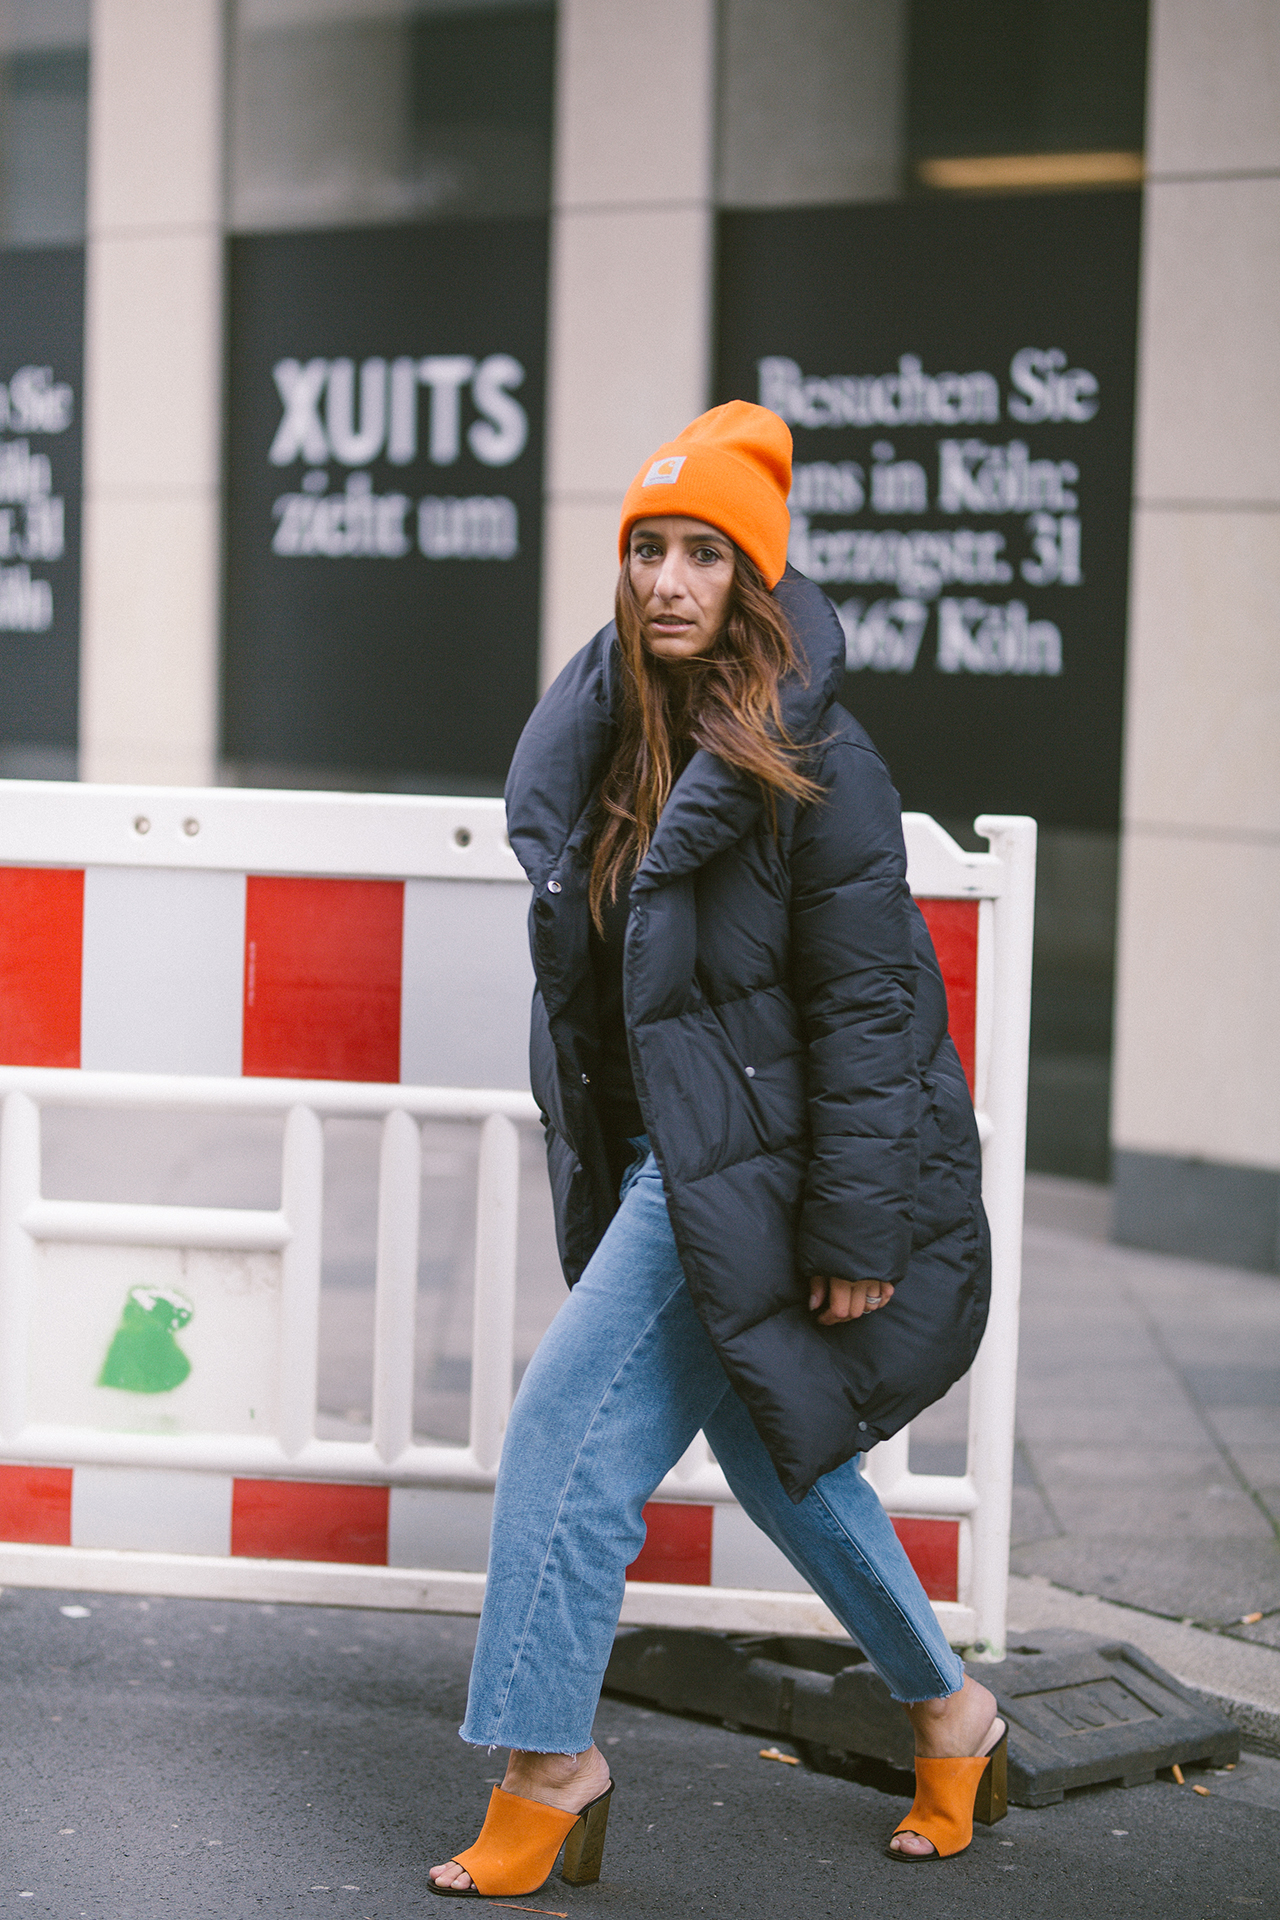 OUTFIT | STREETSTYLE PUFFER JACKET, BEANIE CARHARTT & MULES